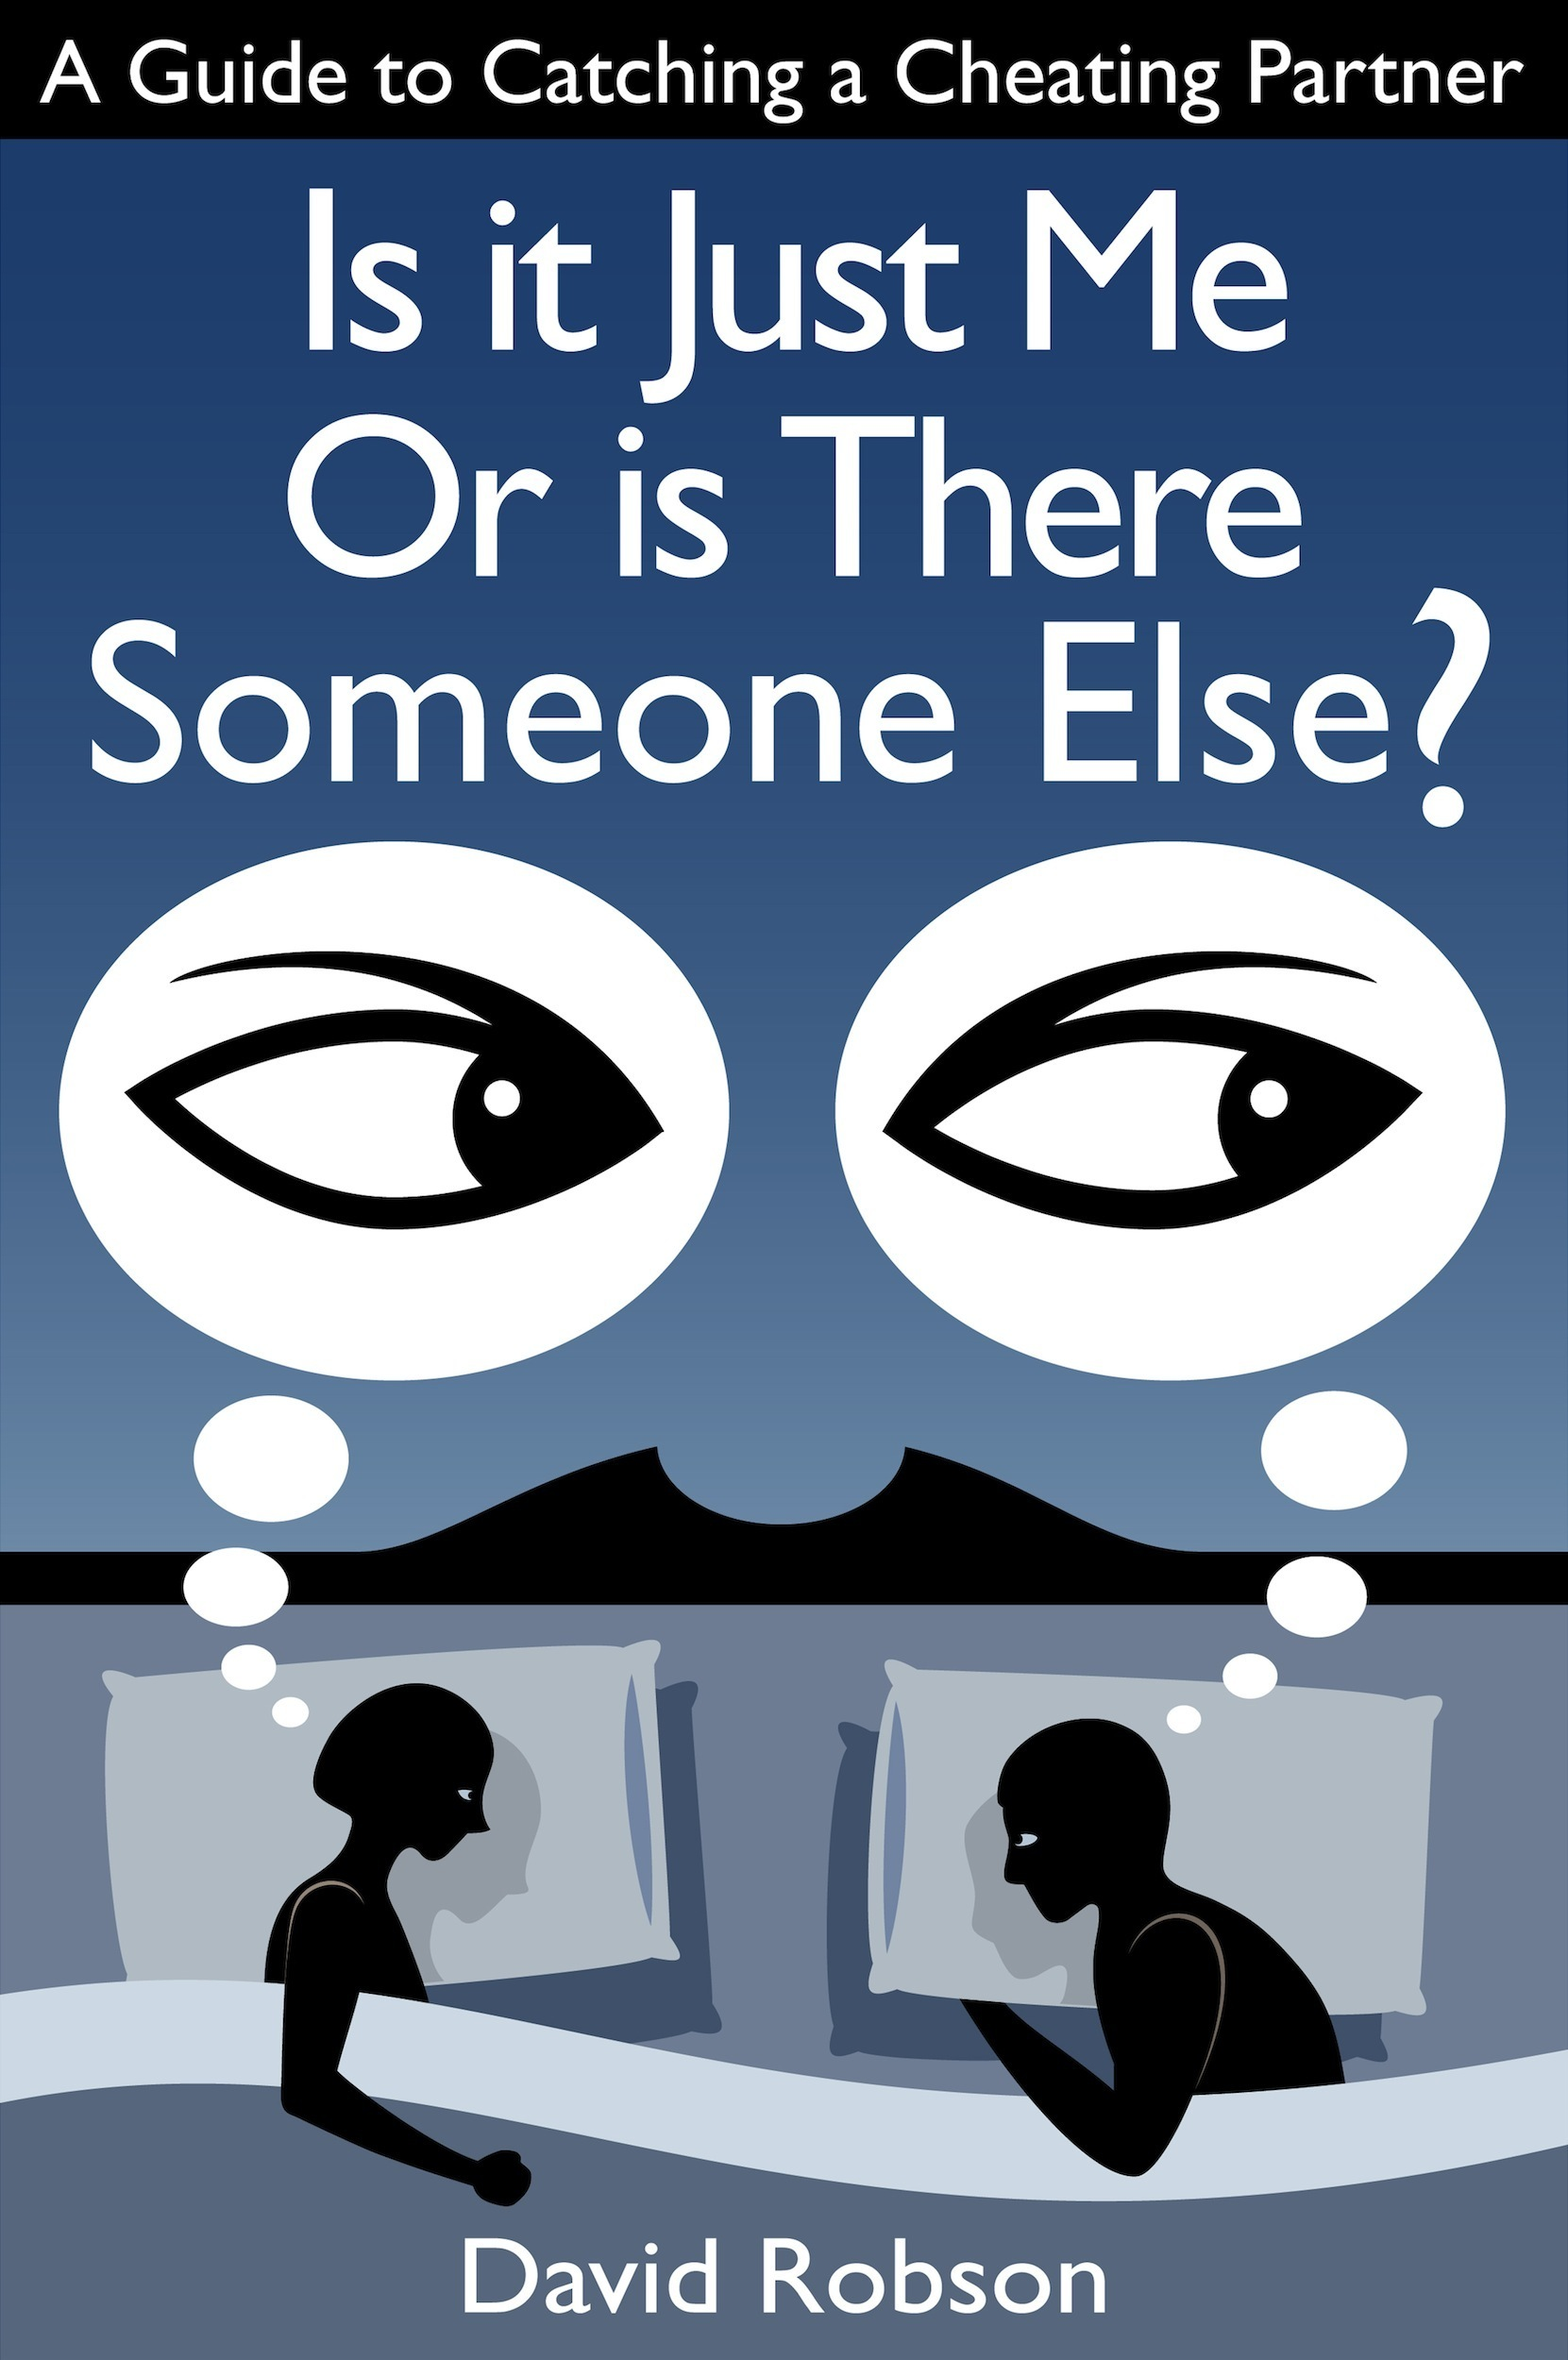 Is It Just Me Or Is There Someone Else? - A Guide to Catching a Cheating  Partner, an Ebook by David Robson